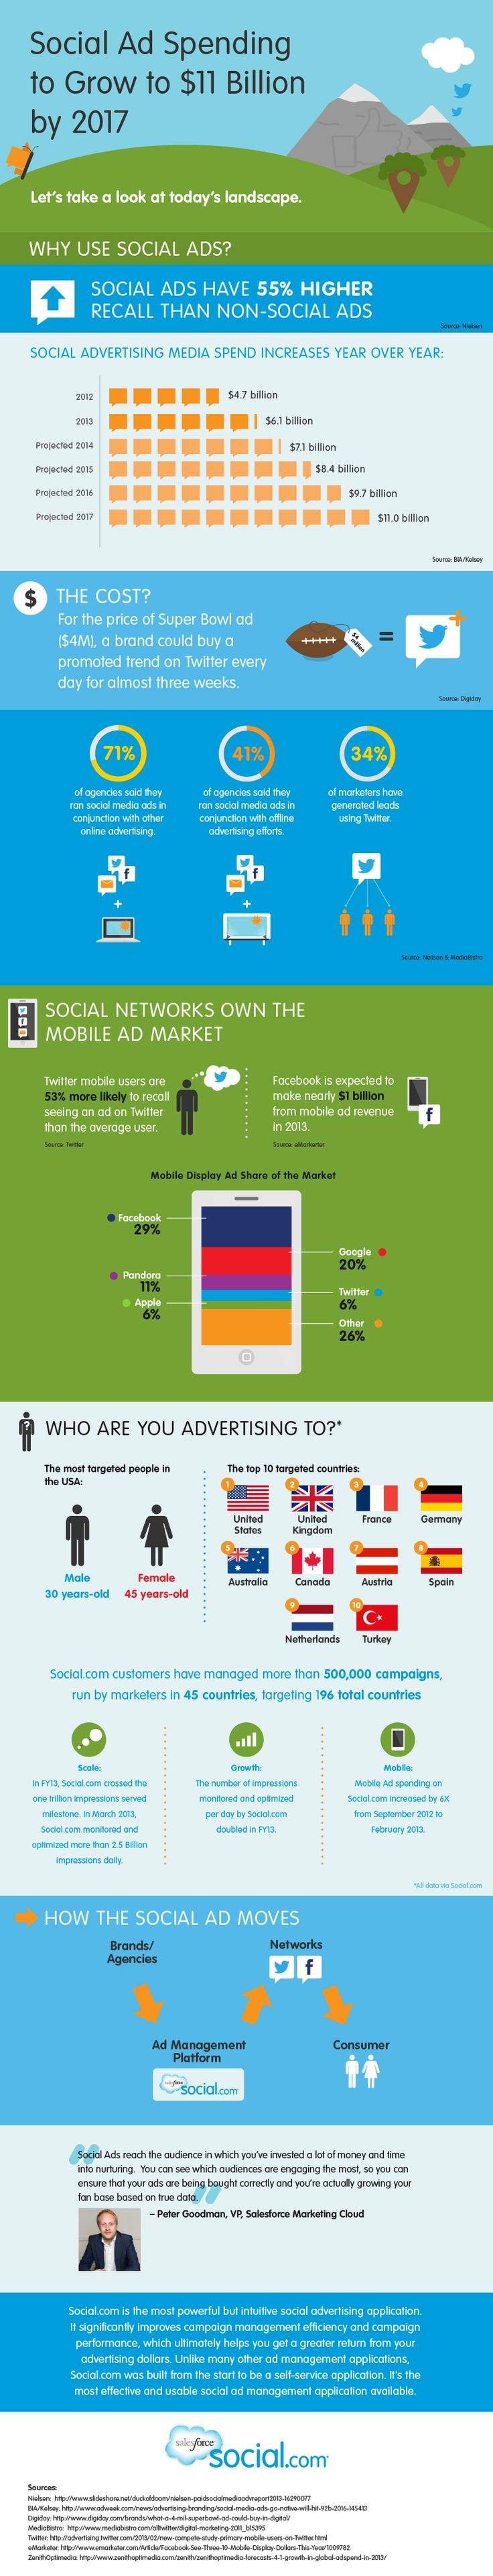 Social Ad Spending Growth | To me the best way to look anti-social in social media (right behind not talking to people) is to fill it with ads, ads and more ads. Just ask yourself: How much of your communiction with friends is you or them advertising to each other products or services? And then think again where to put your social budegt | Unsozial in sozialen Medien wirken Sie durch Schweigen uns Werbeanzeigen. Wieviel Werbung machen Sie in Gesprächen mit Freunden? Budgetallokation…